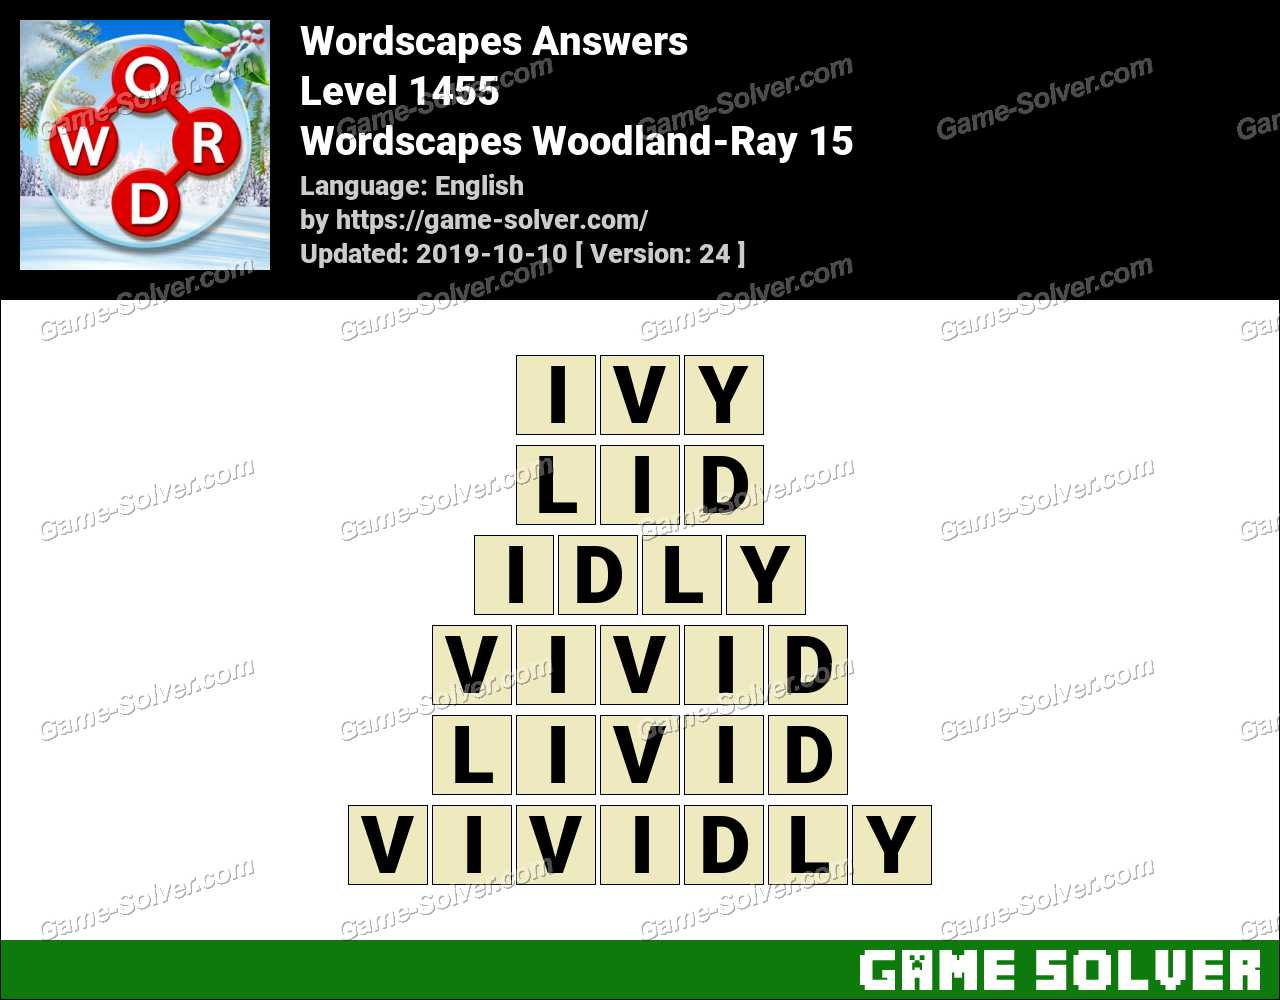 Wordscapes Woodland-Ray 15 Answers